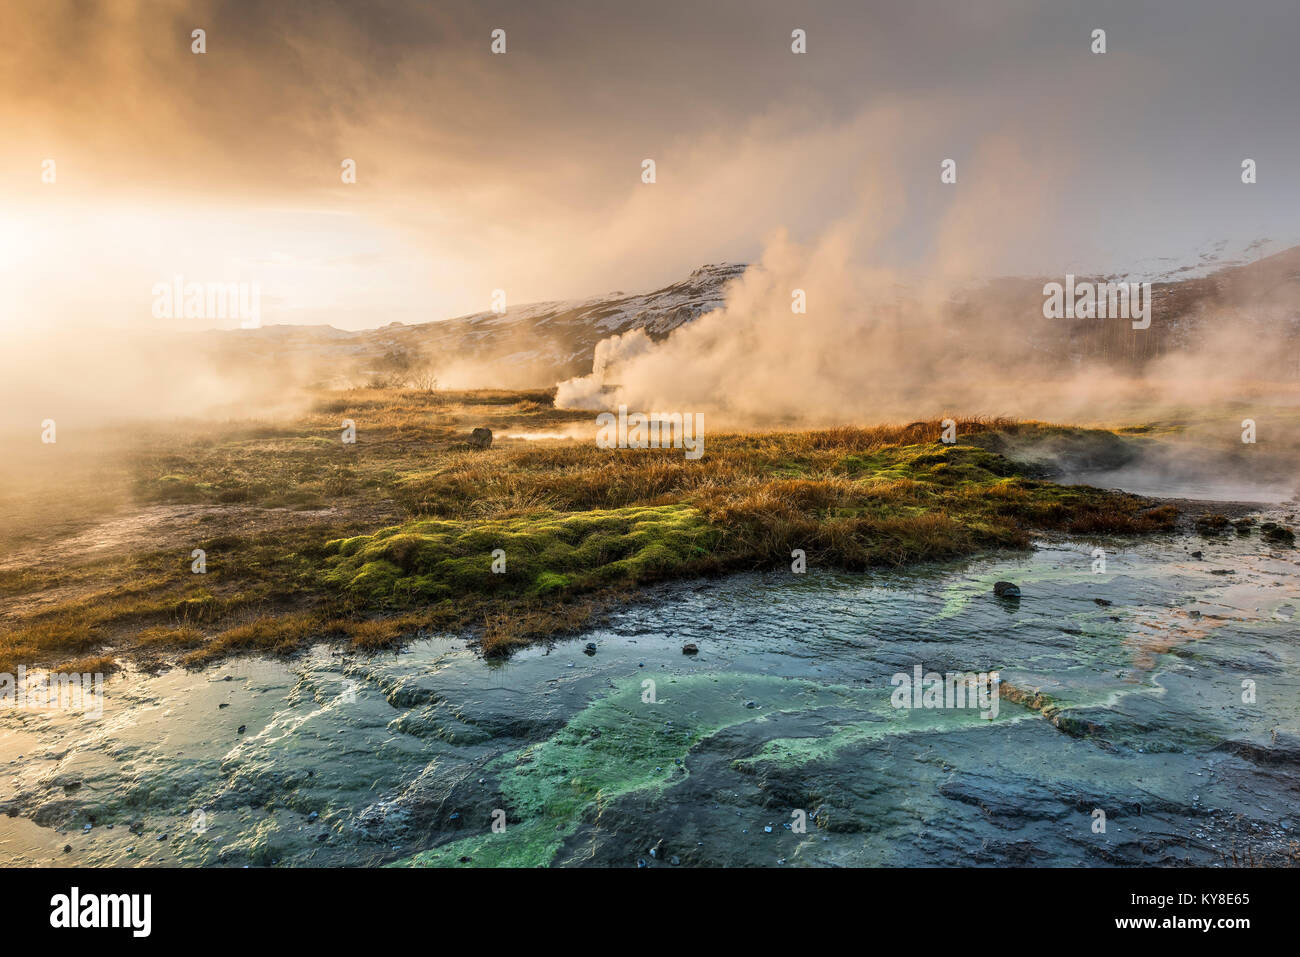 Geothermal region, Steam vents & geysers, Iceland, November, by Dominique Braud/Dembinsky Photo Assoc - Stock Image